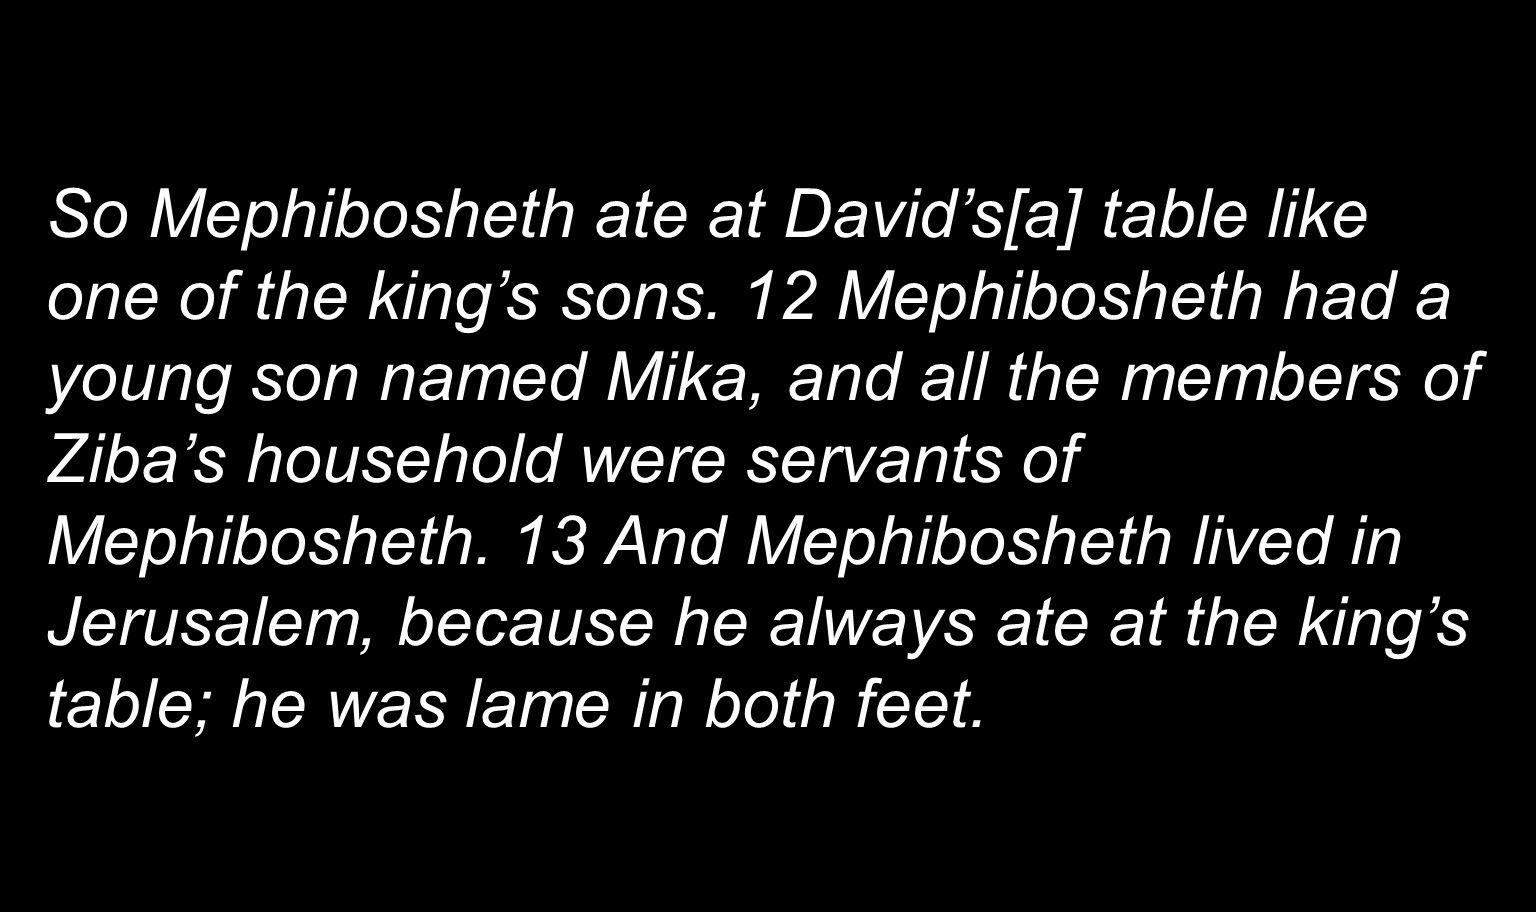 So Mephibosheth ate at David's[a] table like one of the king's sons